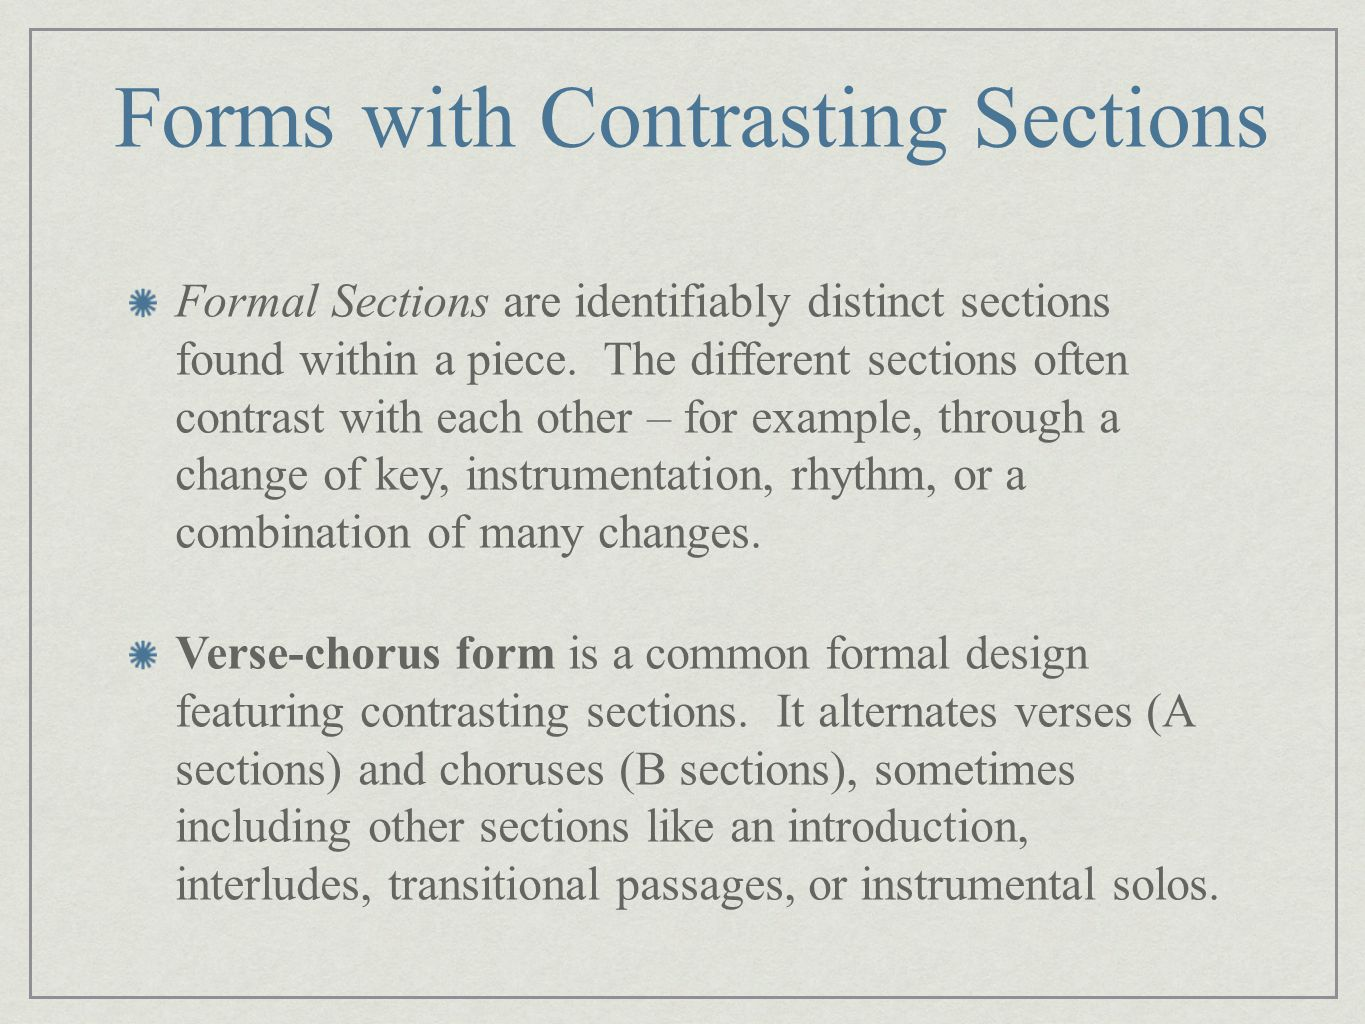 Forms with Contrasting Sections